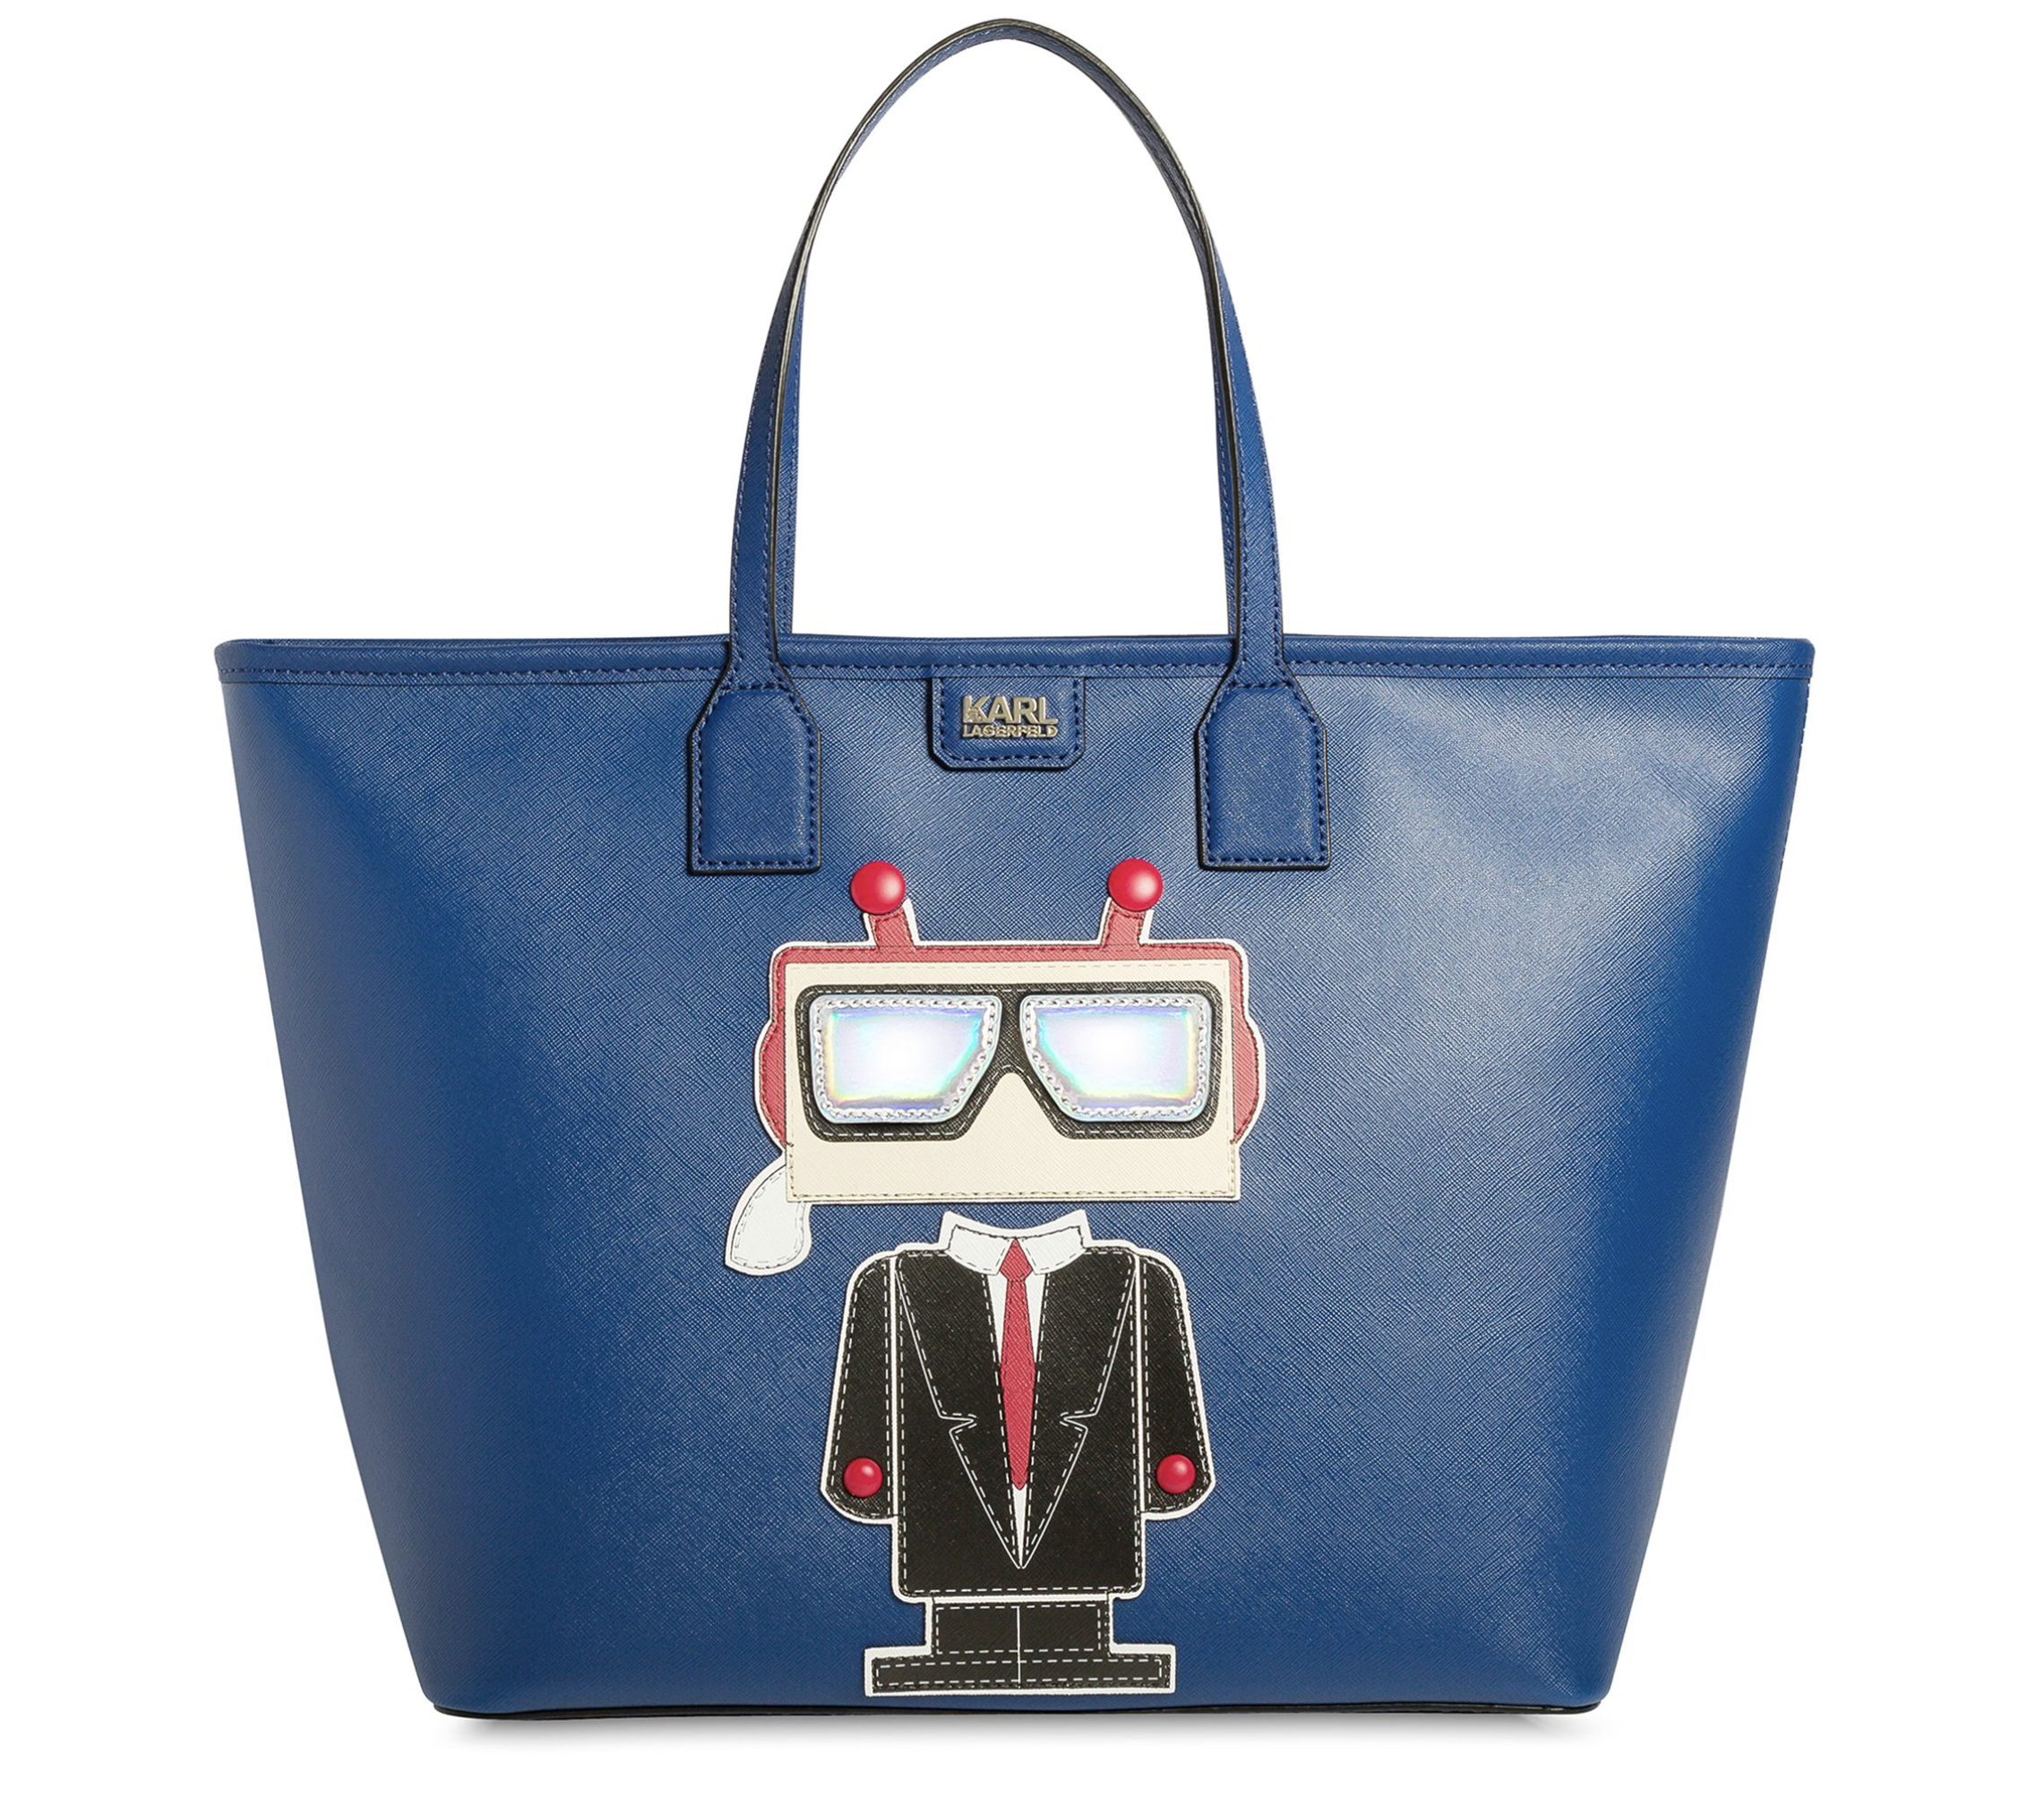 Karl Robot Spring 2016 Collection By Karl Lagerfeld